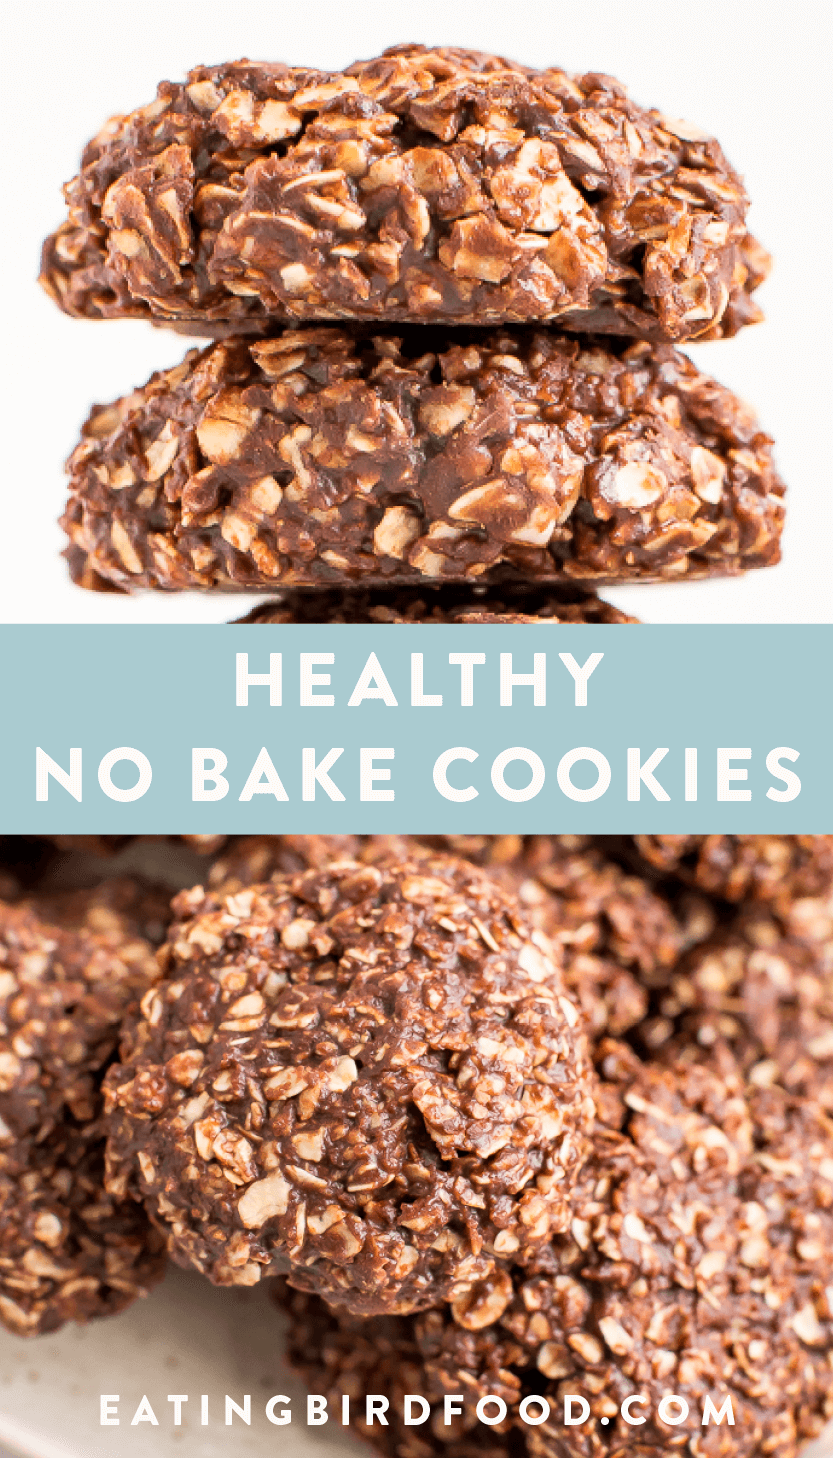 Healthy No Bake Cookies | 50% Less Sugar and No Butter -  Peanut butter chocolate healthy no bake cookies made with half the amount of sugar in traditional n - #Bake #butter #cookies #healthy #healthydessertseasy #healthydessertsinamug #healthydessertslowcarb #healthydessertsnosugar #healthydessertsrecipes #healthydessertsunder100calories #sugar